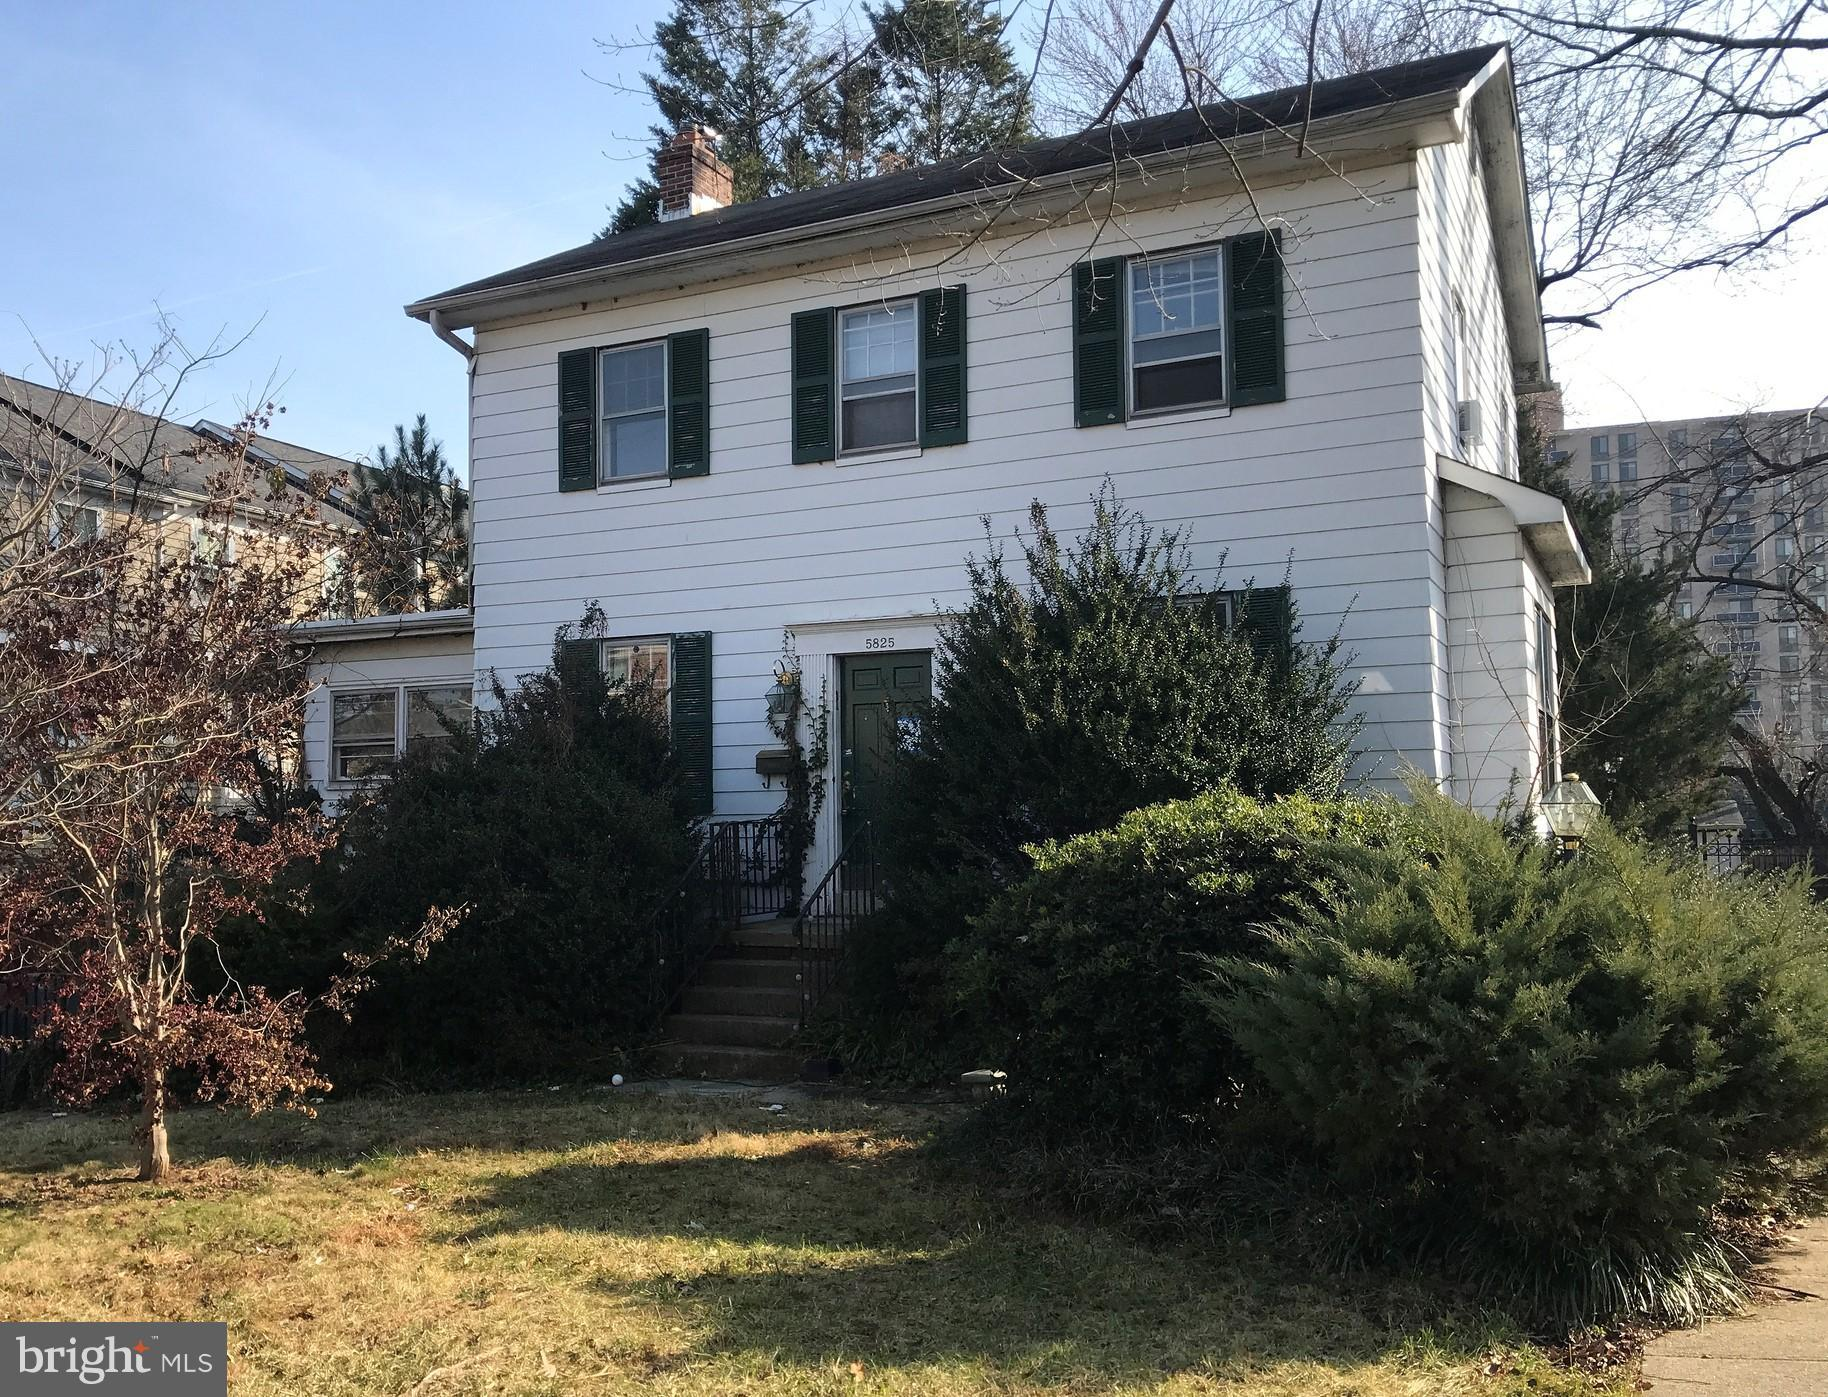 3BD/1 Full and 2 Half BA  home with three floors & endless possibilities.  Hardwood floors and a fireplace inside. Spacious fenced backyard great for entertainment with a separate shed.  Great location -1/2 mile to Huntington Metro.